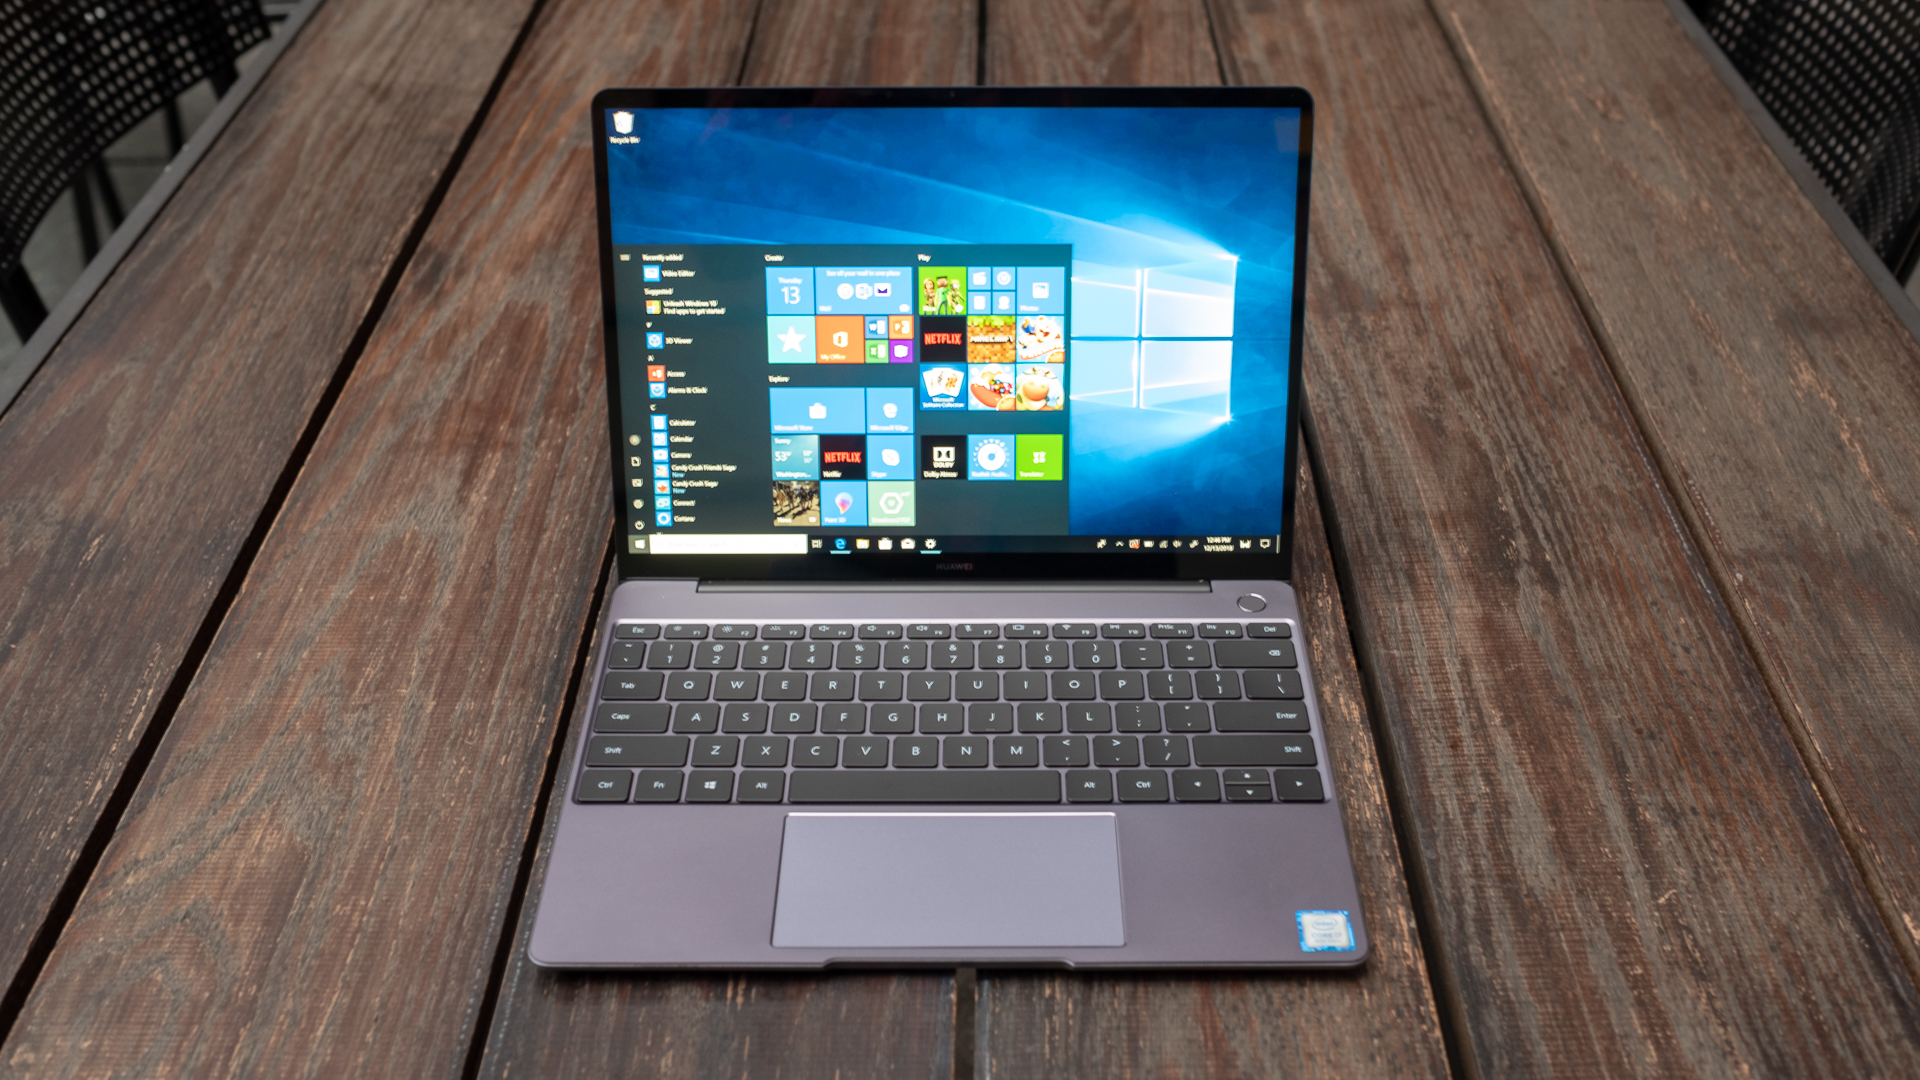 CES 2019 was absolutely buried in laptops and PCs – why?